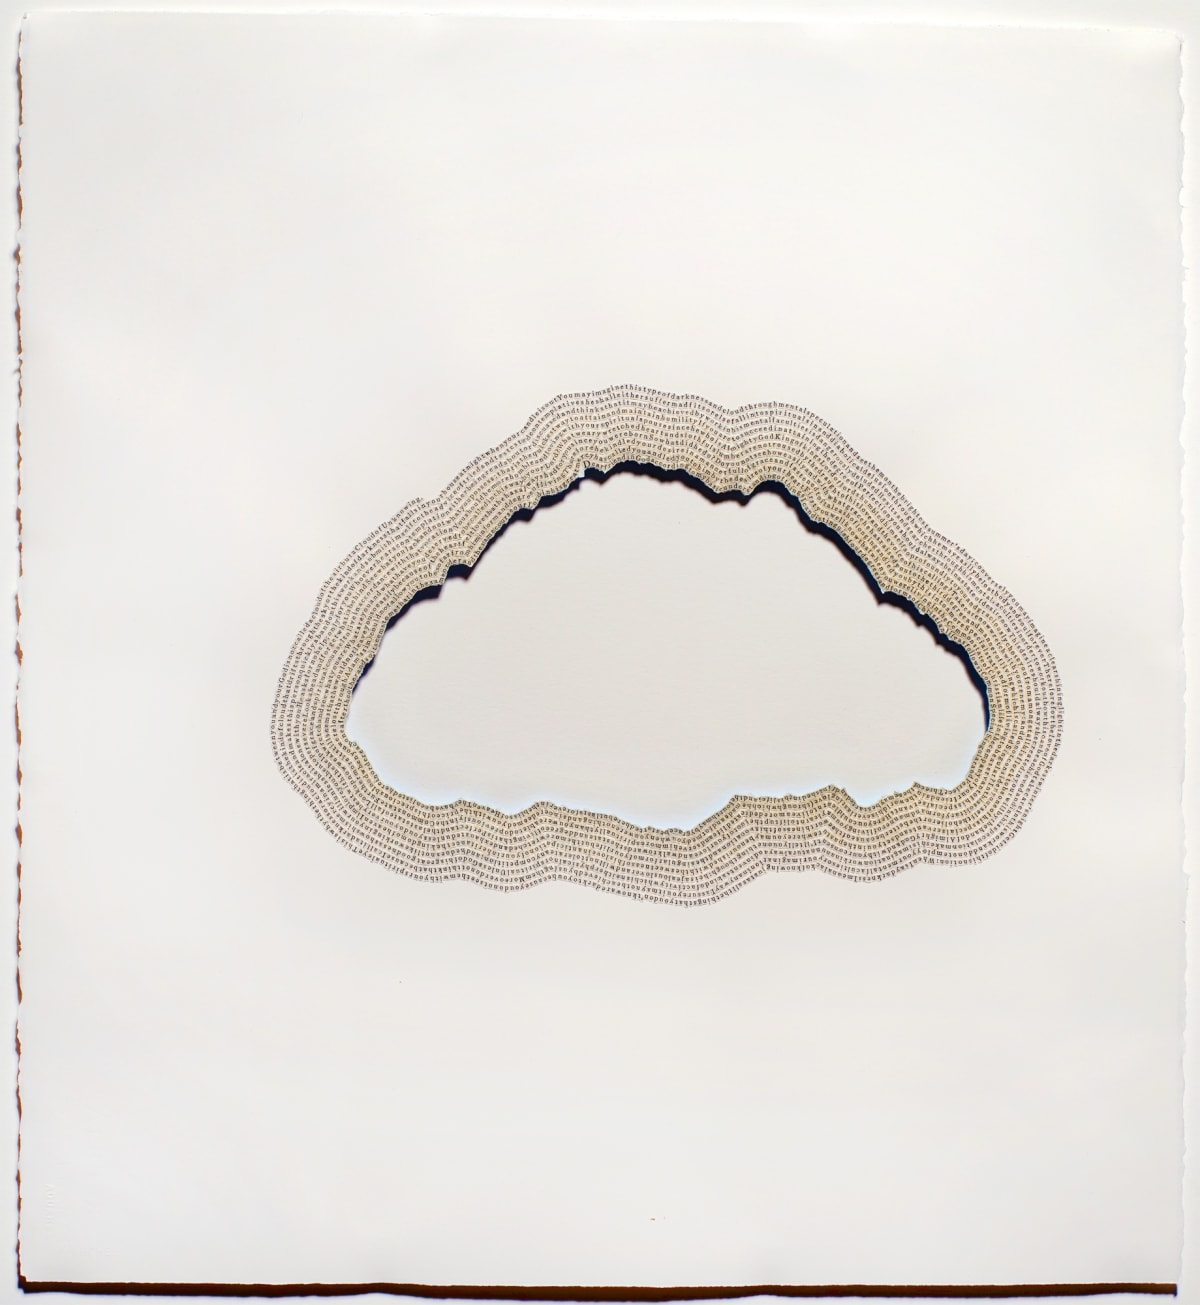 Meg Hitchcock The Cloud of Unknowing, 2015